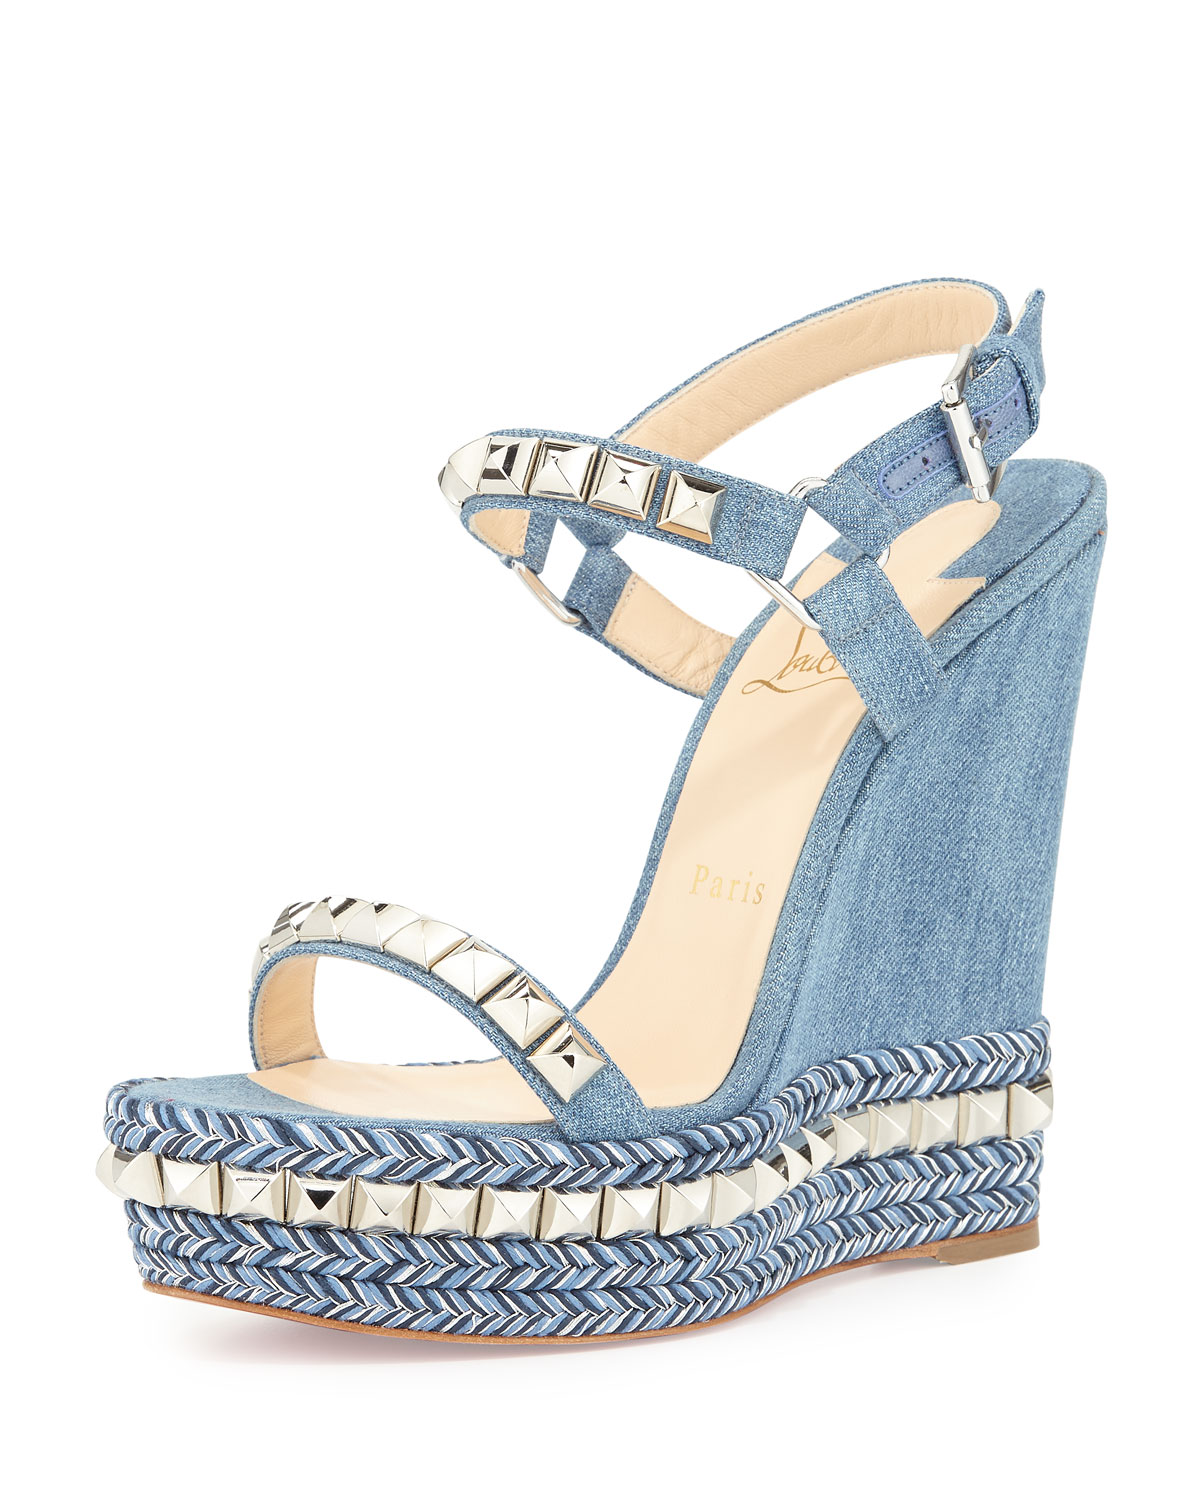 71fe4c6d1ea5 Christian Louboutin Cataclou Blue Denim 140mm Wedge Red Sole Sandals ...